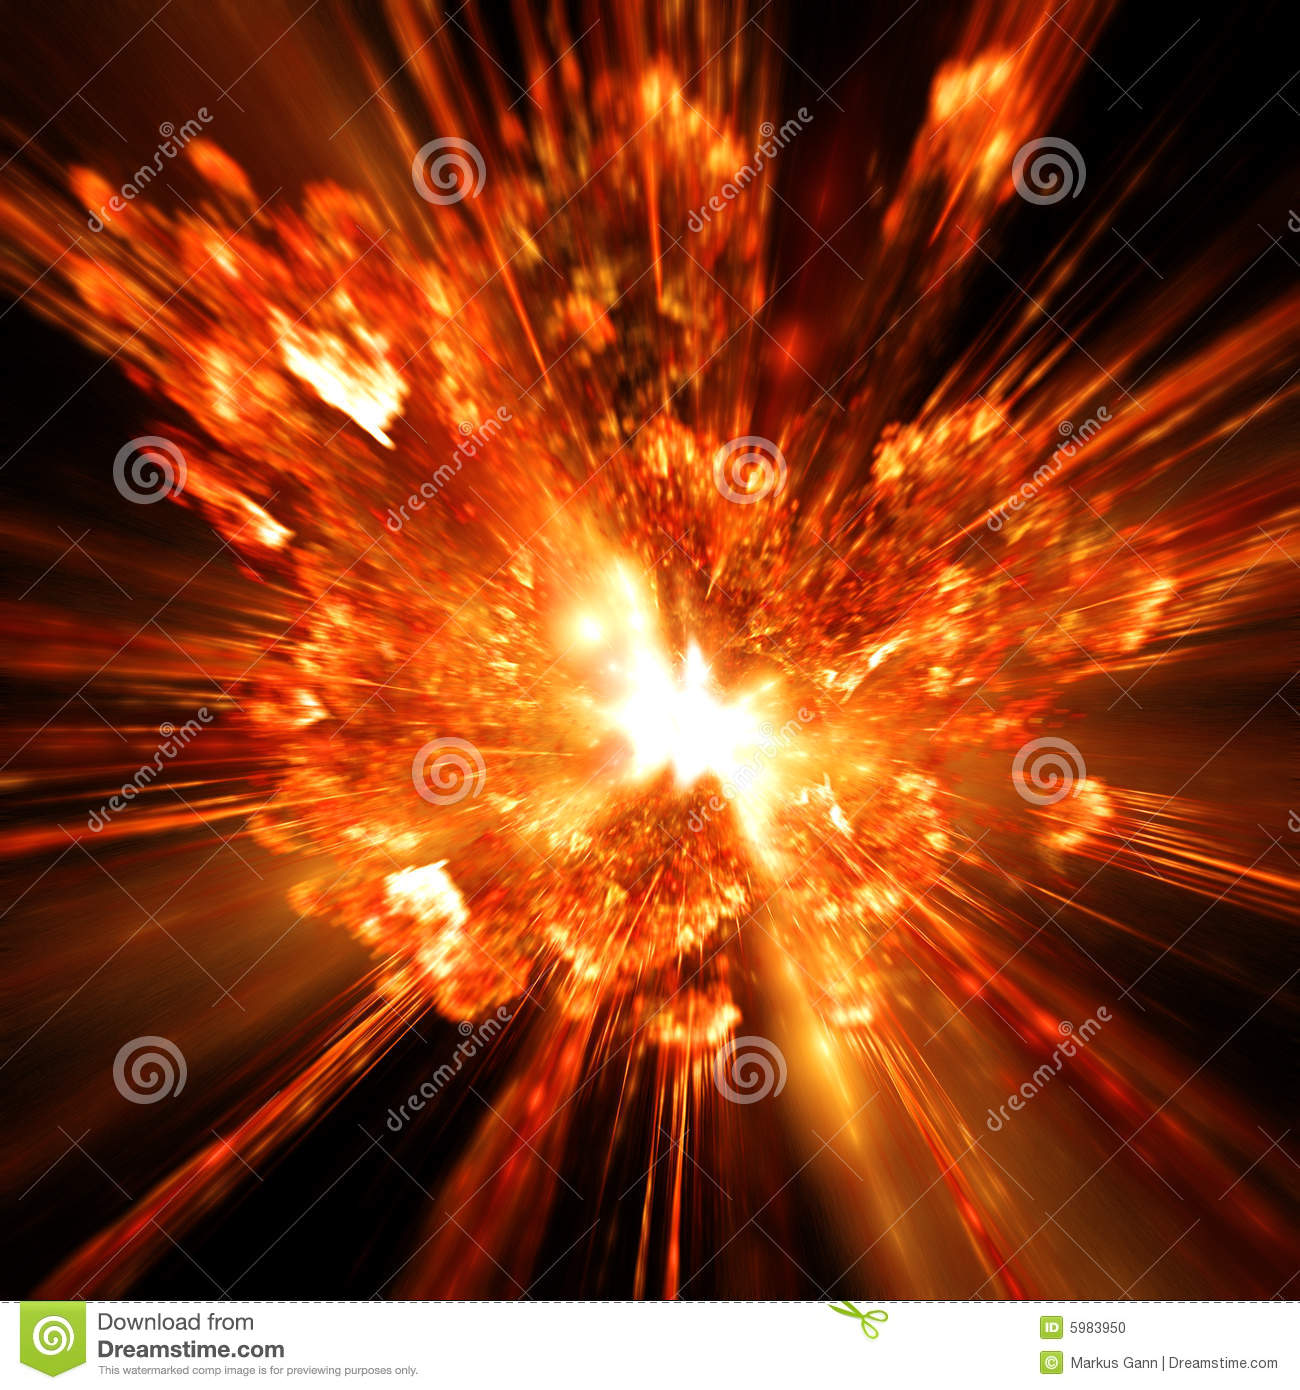 An illustration of a hot firework explosion.